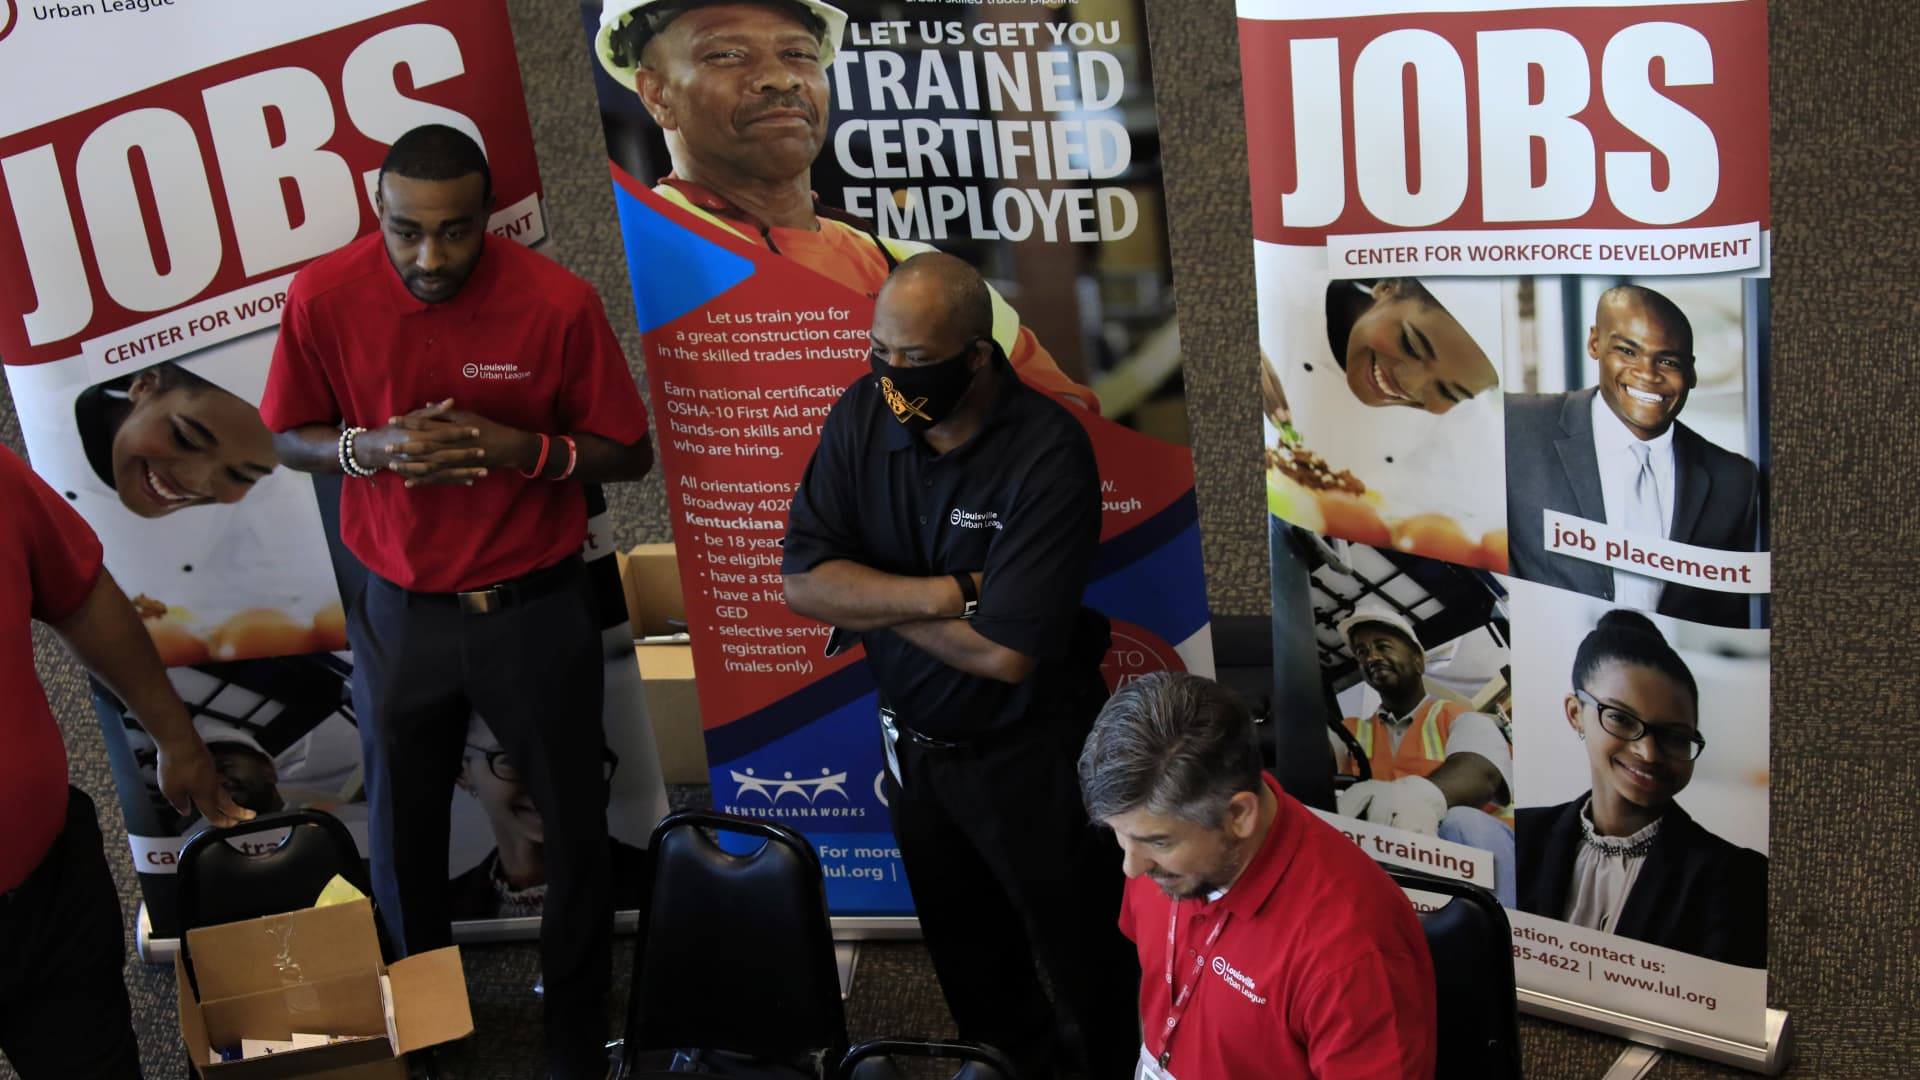 Employees from the Louisville Urban League speak with job seekers at a Job News USA career fair in Louisville, Kentucky, U.S., on Wednesday, June 23, 2021.